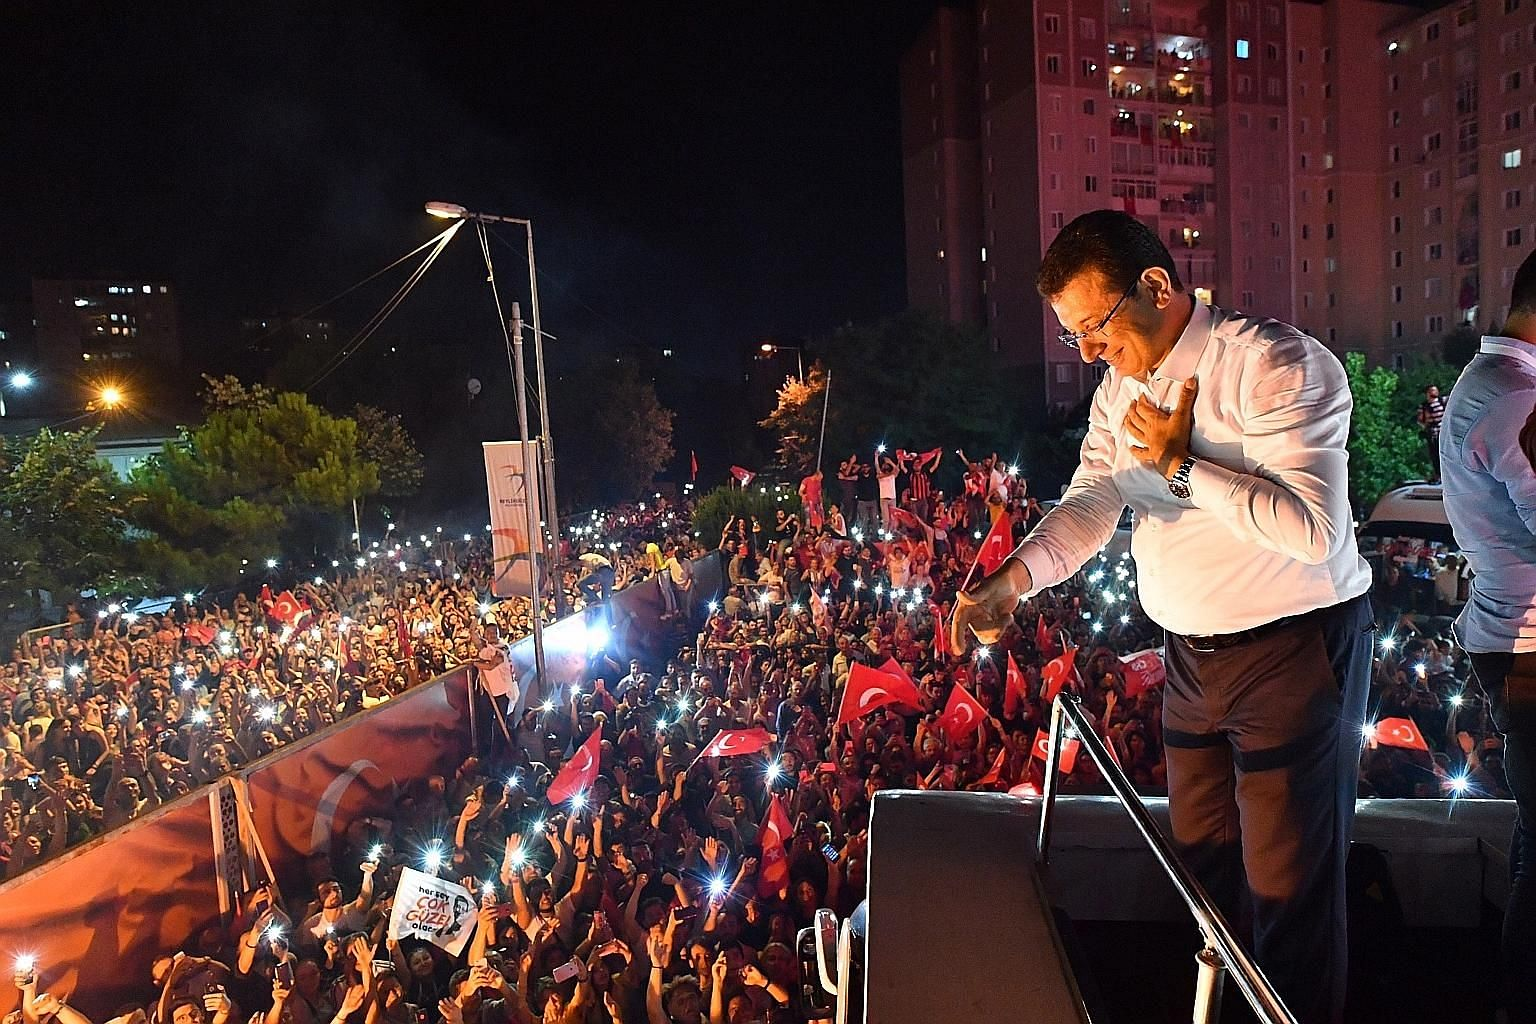 Newly re-elected Istanbul Mayor Ekrem Imamoglu greeting his supporters after his victory on Sunday. The opposition politician gained a decisive 54 per cent of the votes in his victory over the ruling AKP candidate Binali Yildirim's 45 per cent. The l